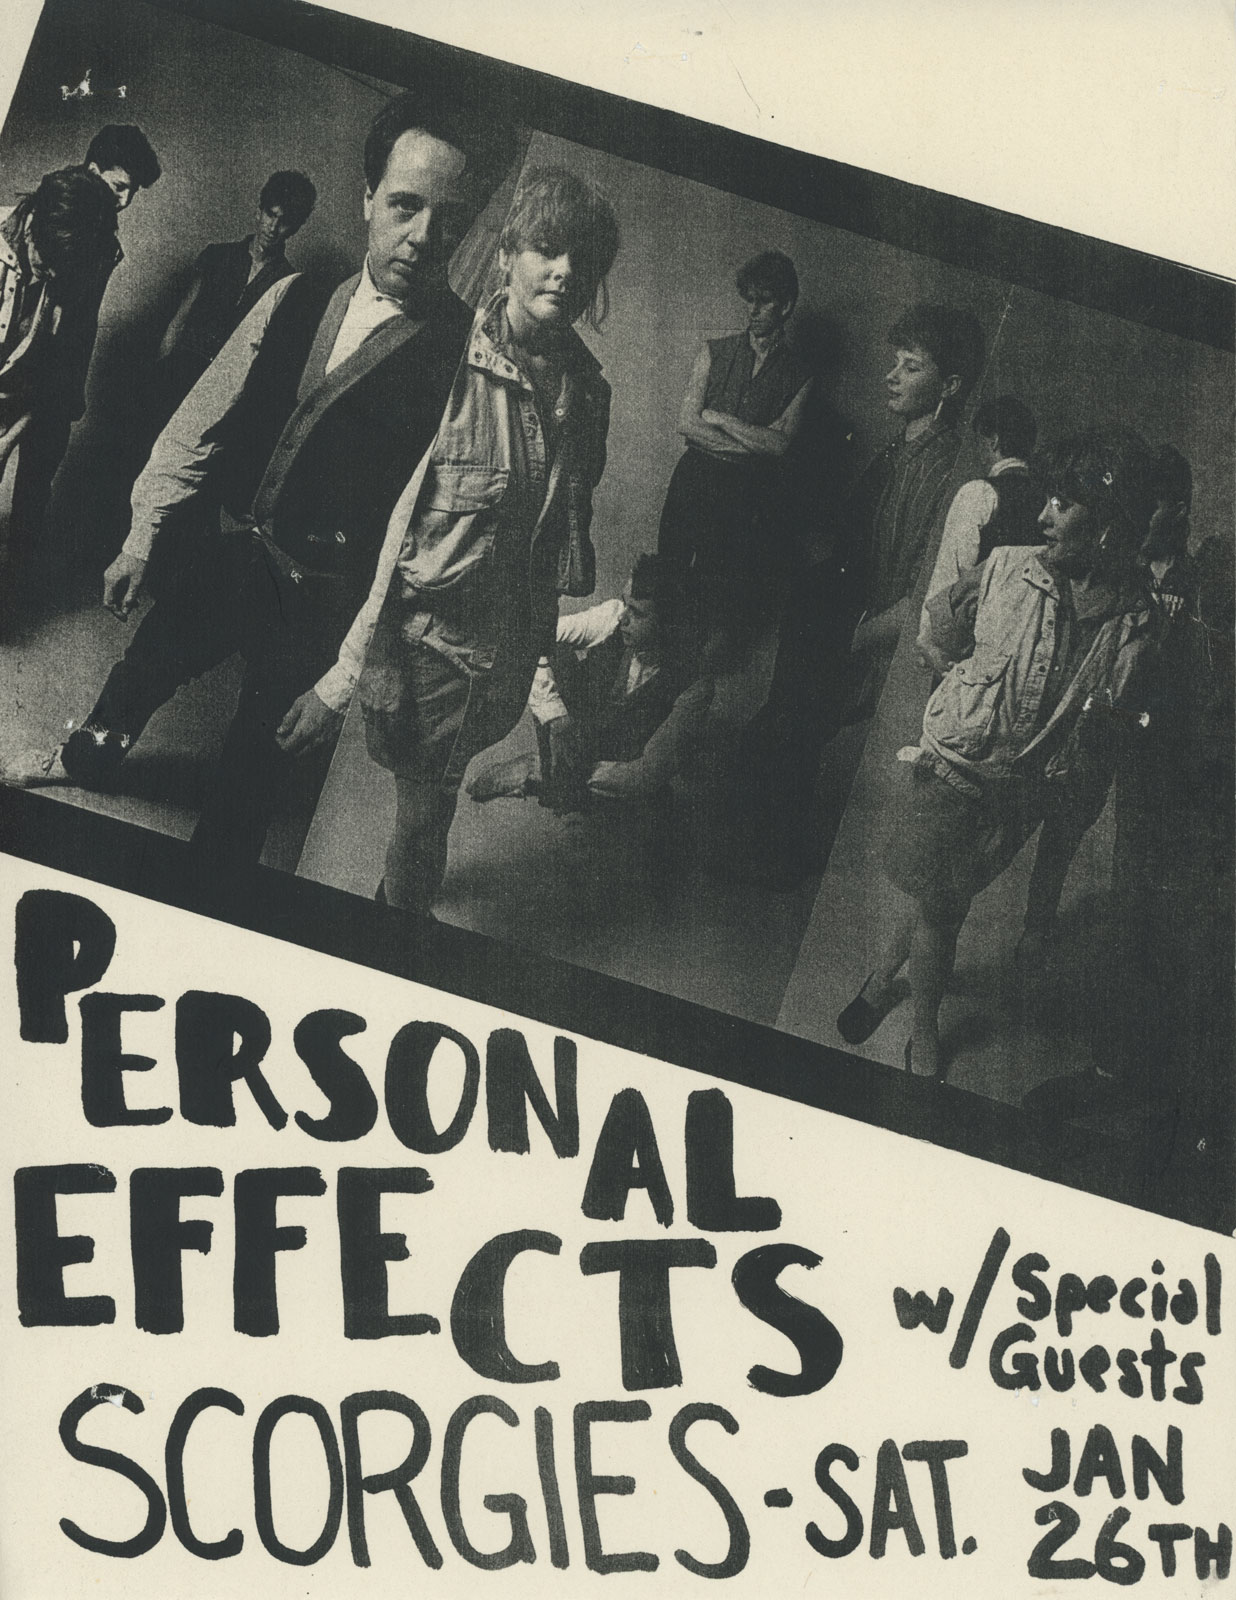 Poster for Personal Effects at Scorgies in Rochester, New York 01.26.1985. Bob Martin designed this poster.